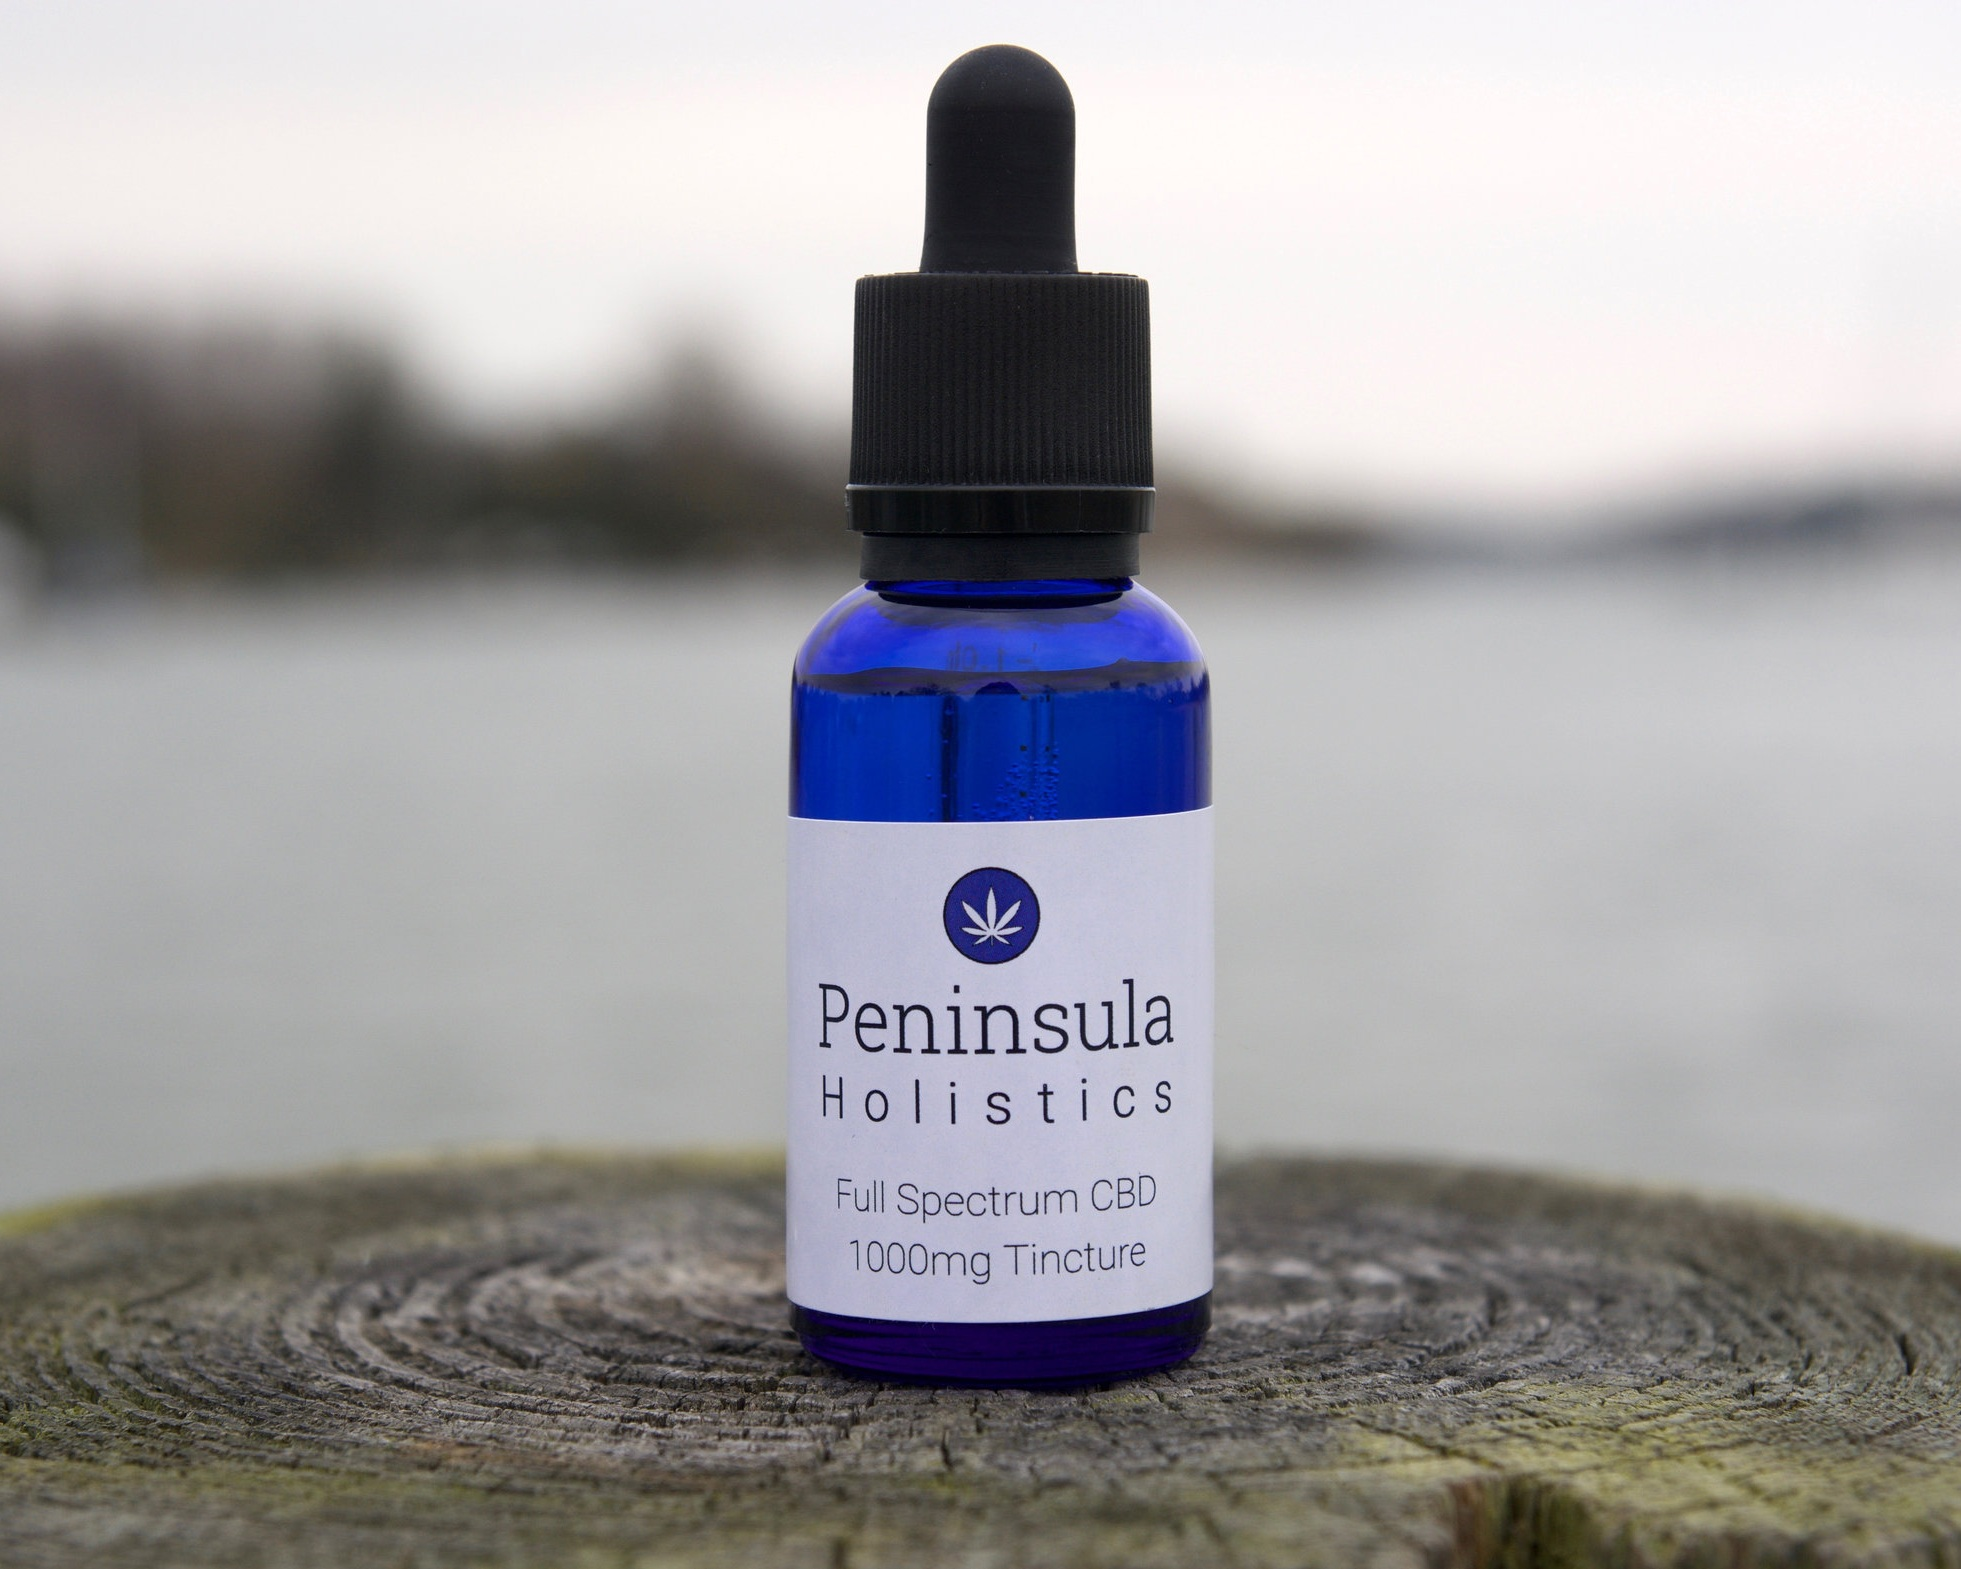 Peninsula Holistics Full Spectrum CBD Tincture